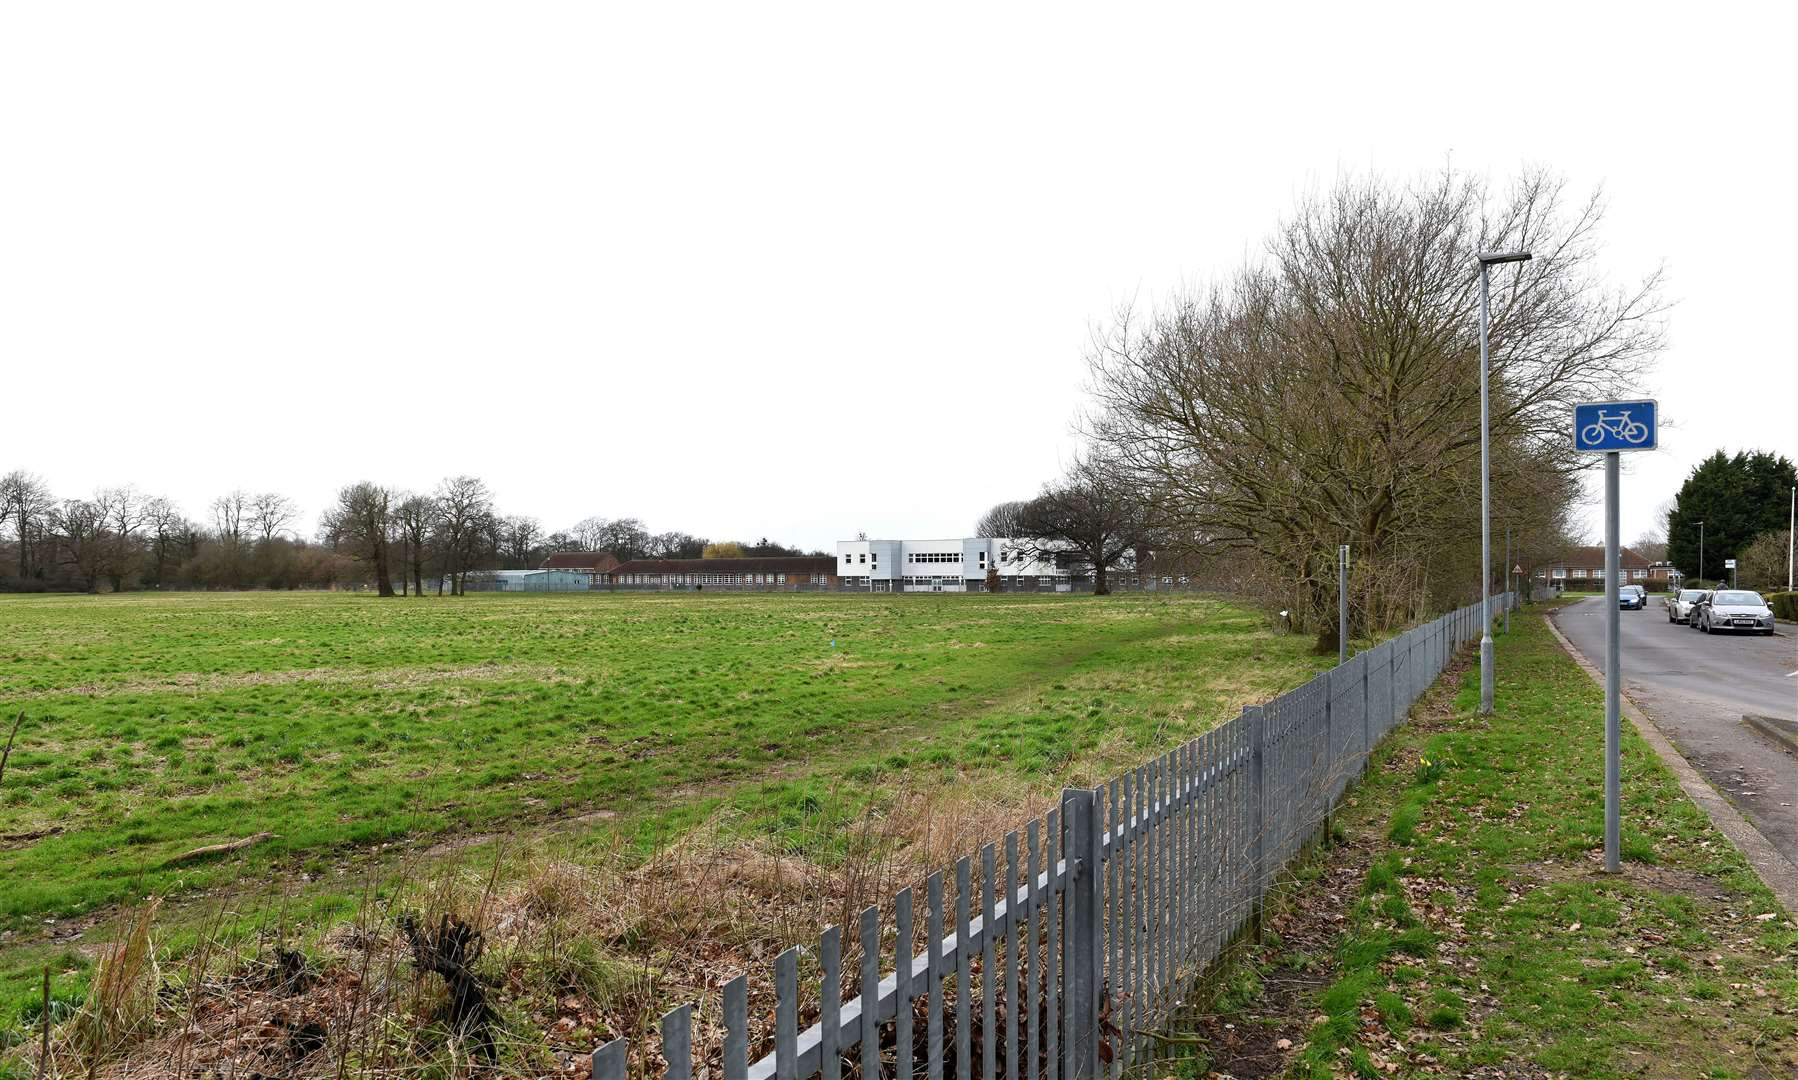 GV Picture of Land which is being Proposed for Possible New Housing Development for the Gaywood Area...Land between King's Lynn Academy Site (on right in pic) off Parkway Gaywood. (29878393)